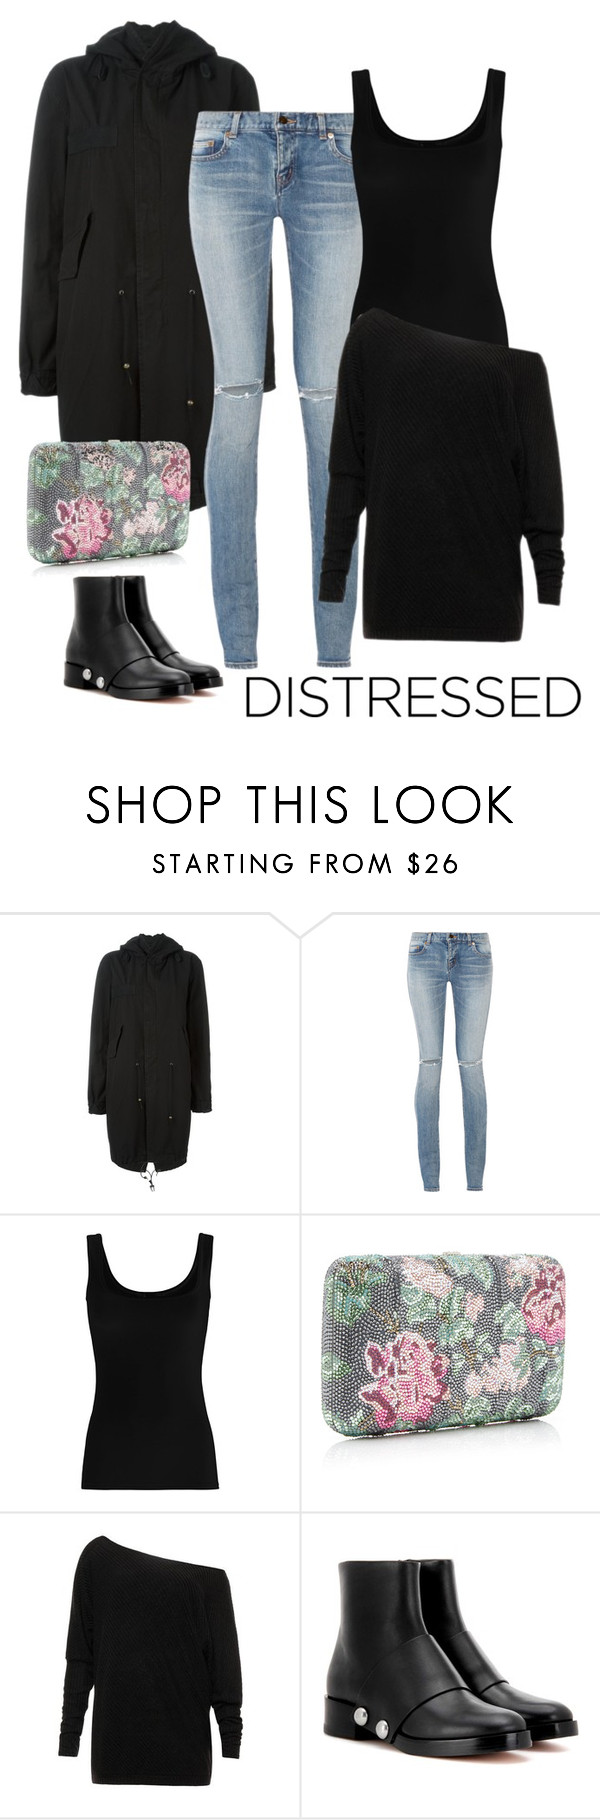 """""""Senza titolo #1502"""" by granatina ❤ liked on Polyvore featuring Mr & Mrs Italy, Yves Saint Laurent, Twenty, Alexander Wang and jeans"""